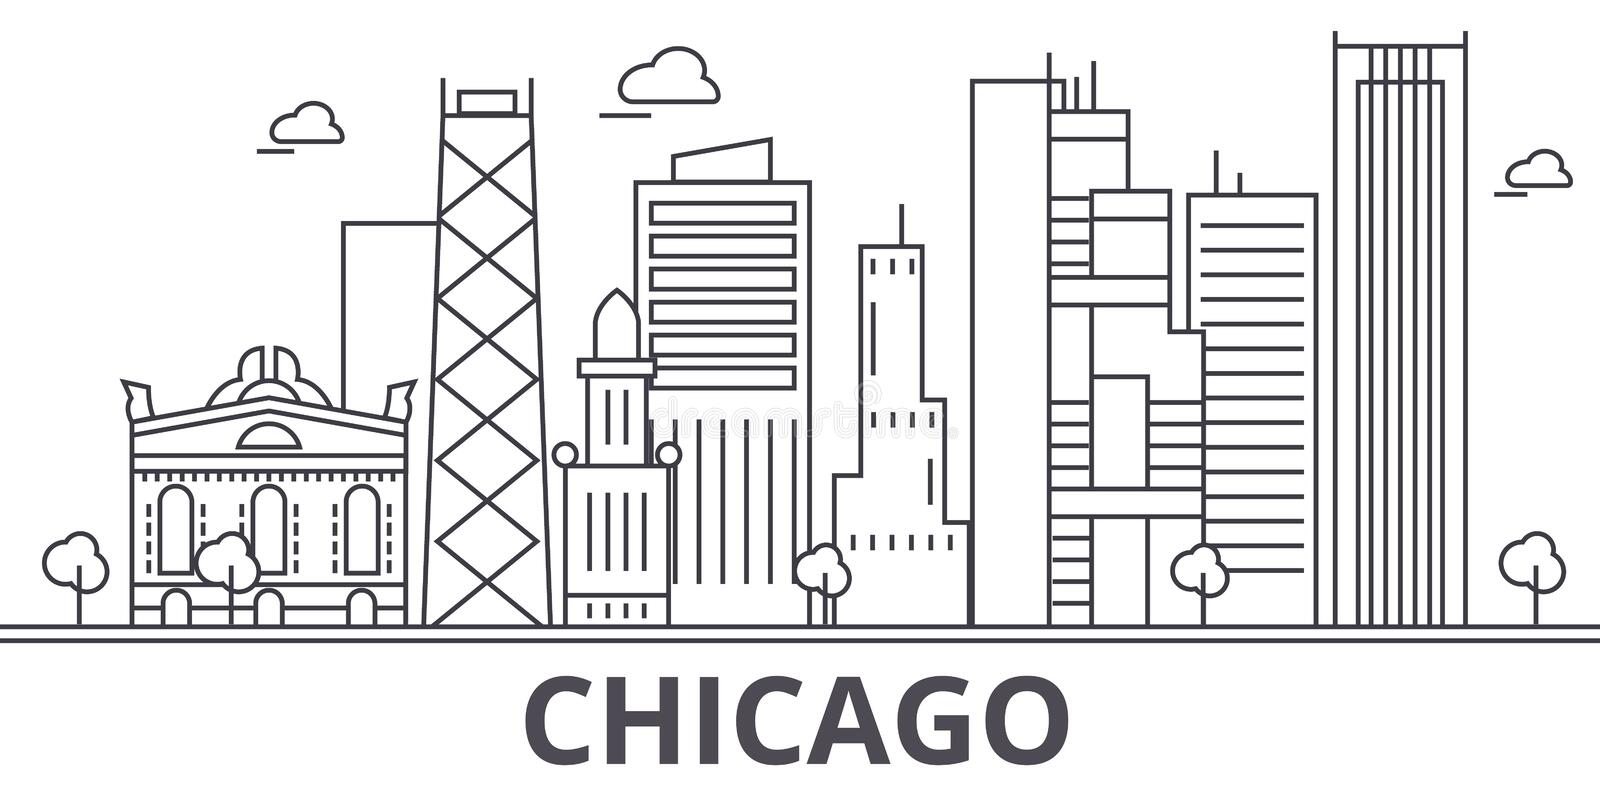 Chicago architecture line skyline illustration. Linear vector cityscape with famous landmarks, city sights, design icons. Editable strokes vector illustration